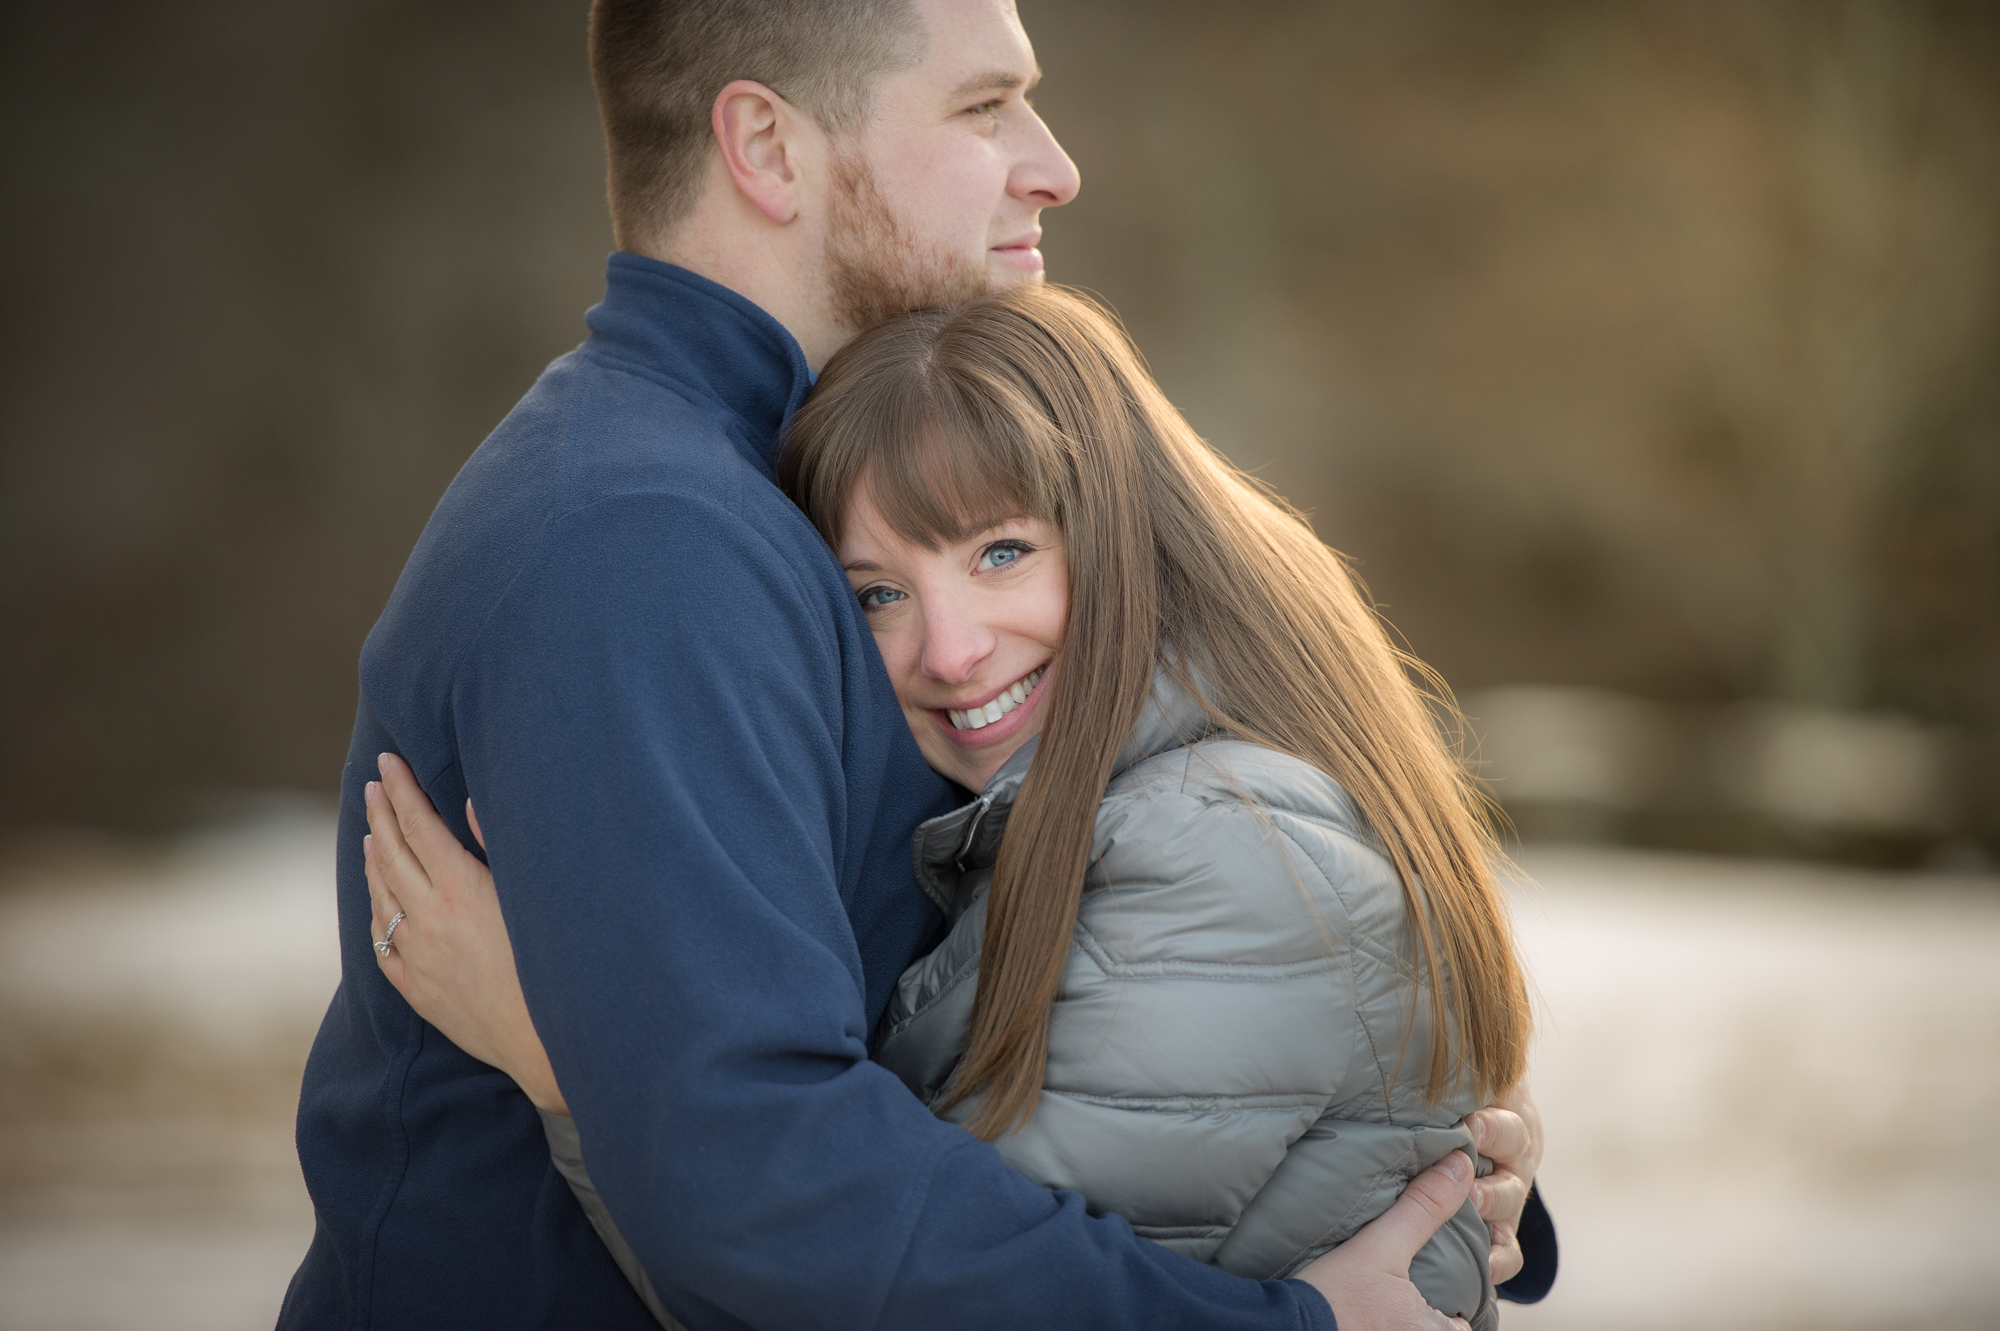 southford_falls_engagement-0010.jpg